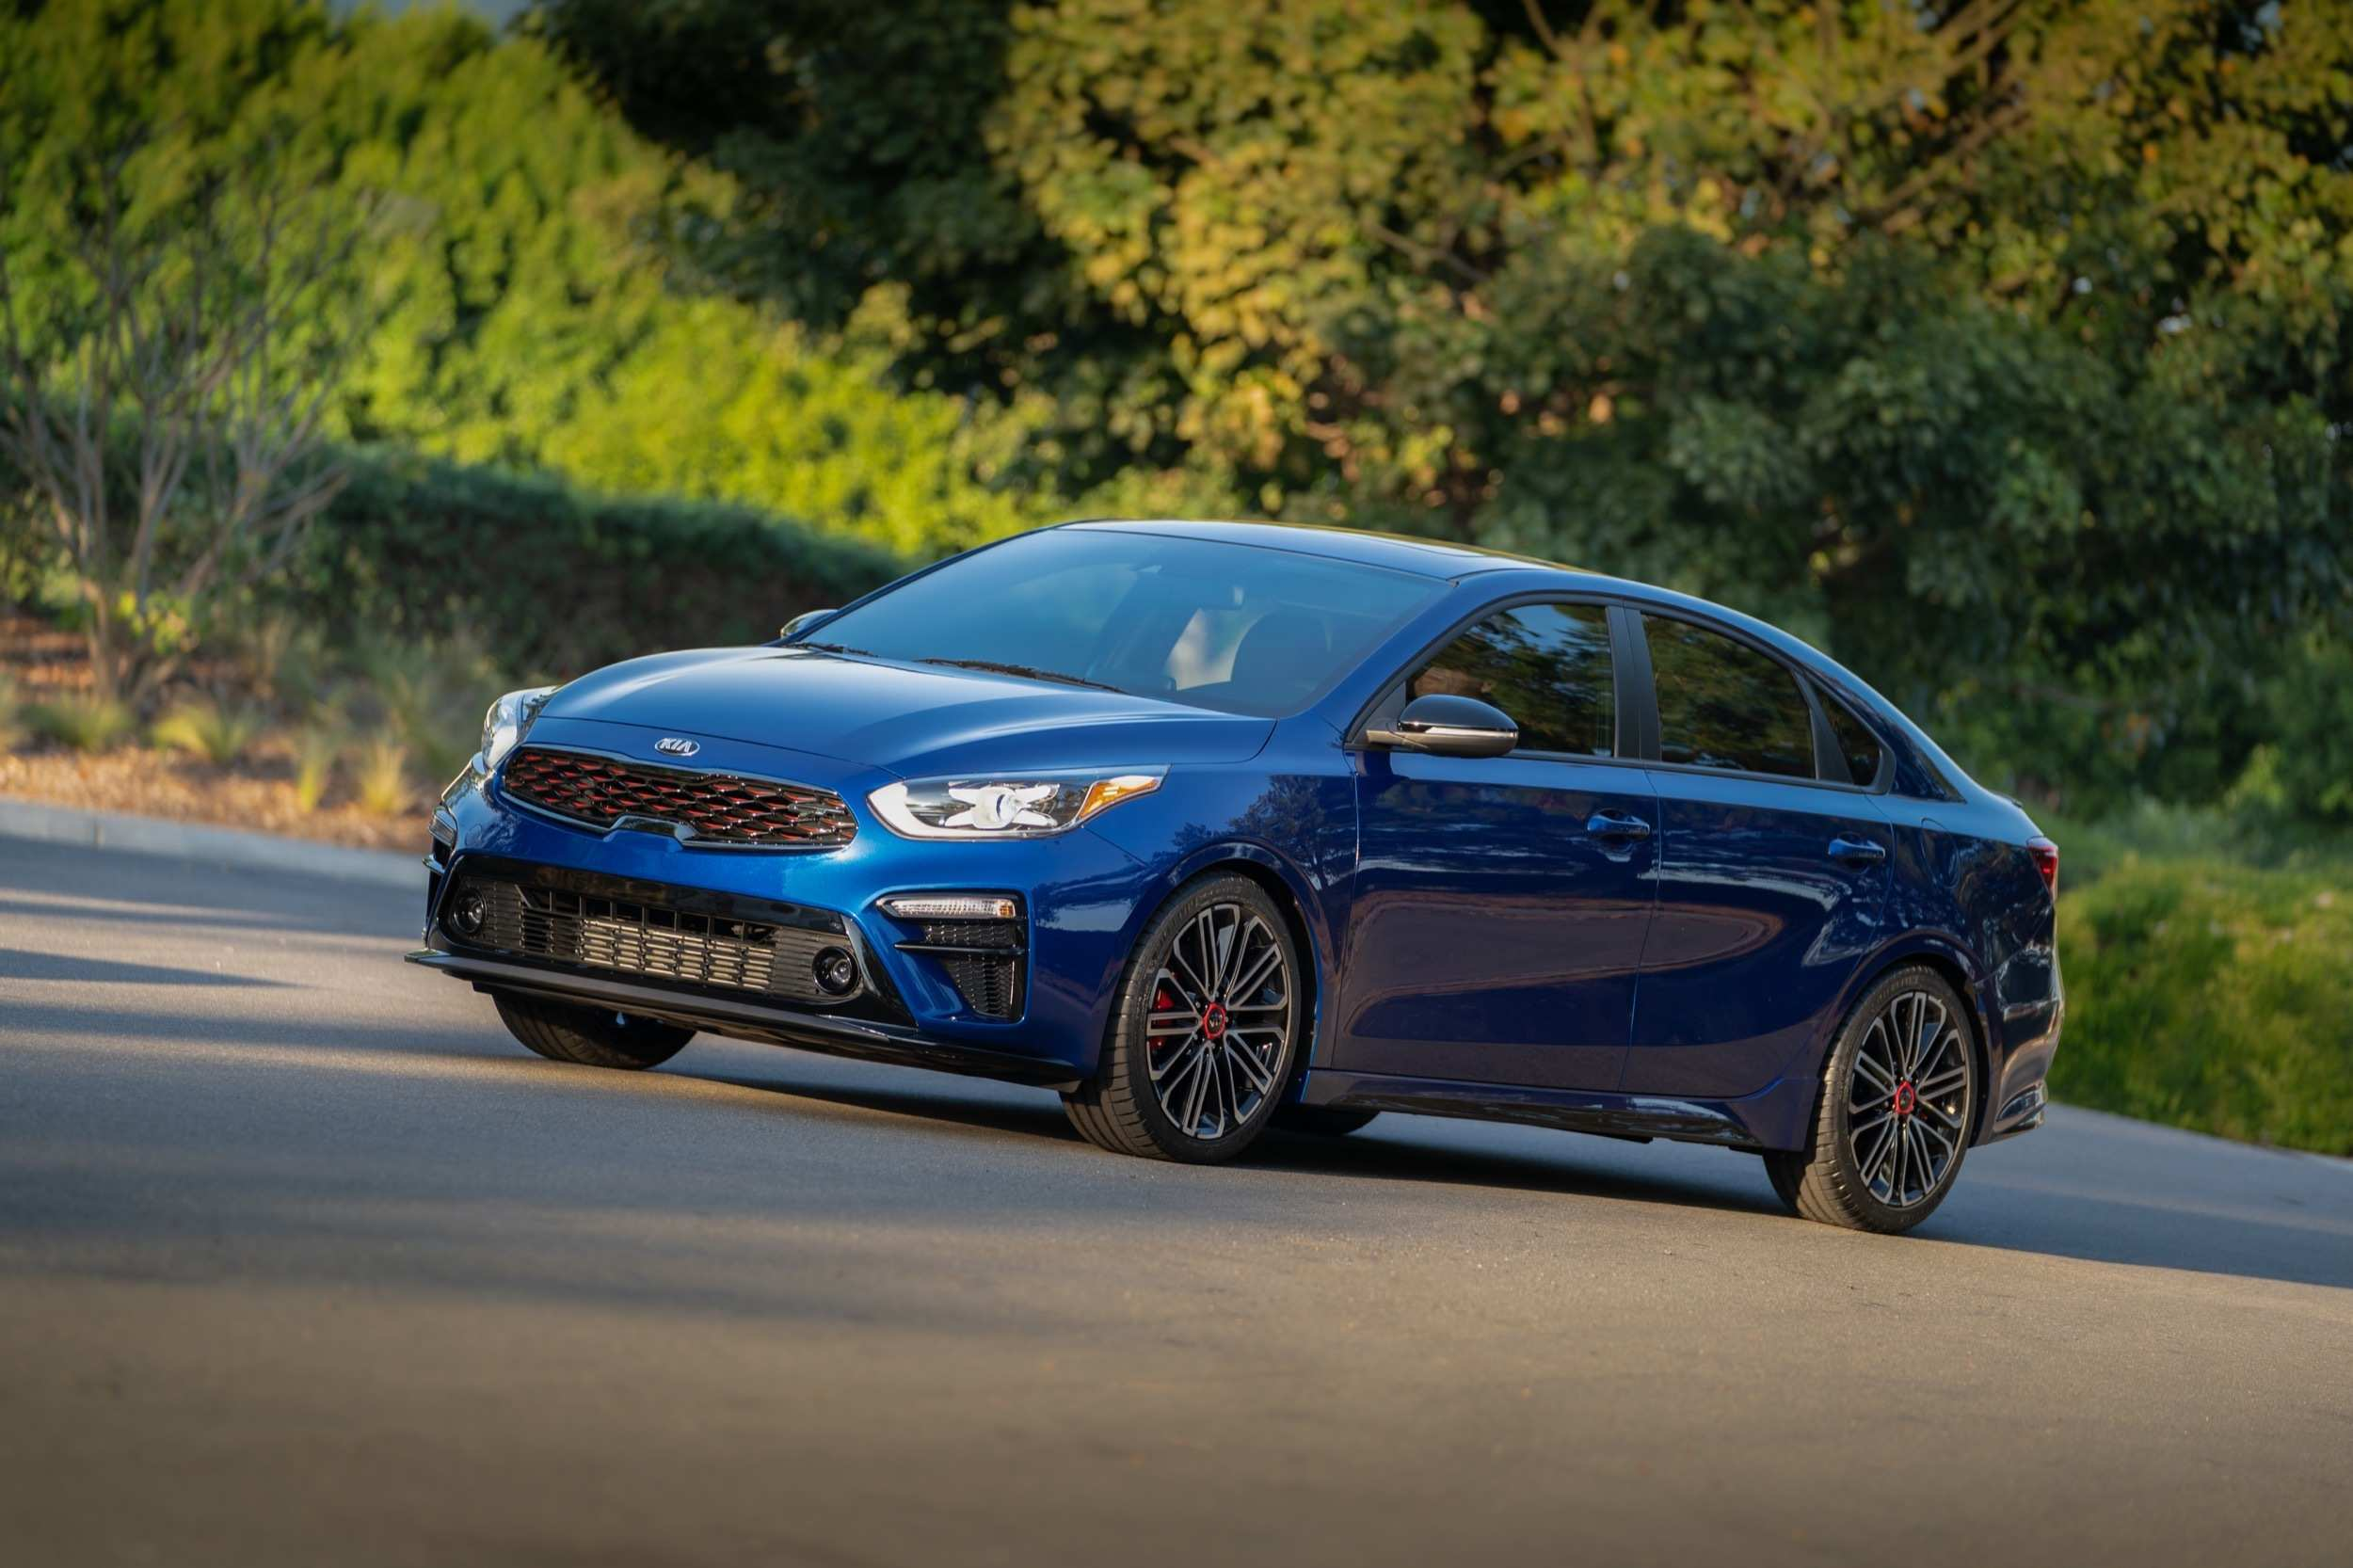 52 Gallery of Kia Mexico Forte 2020 Exterior for Kia Mexico Forte 2020